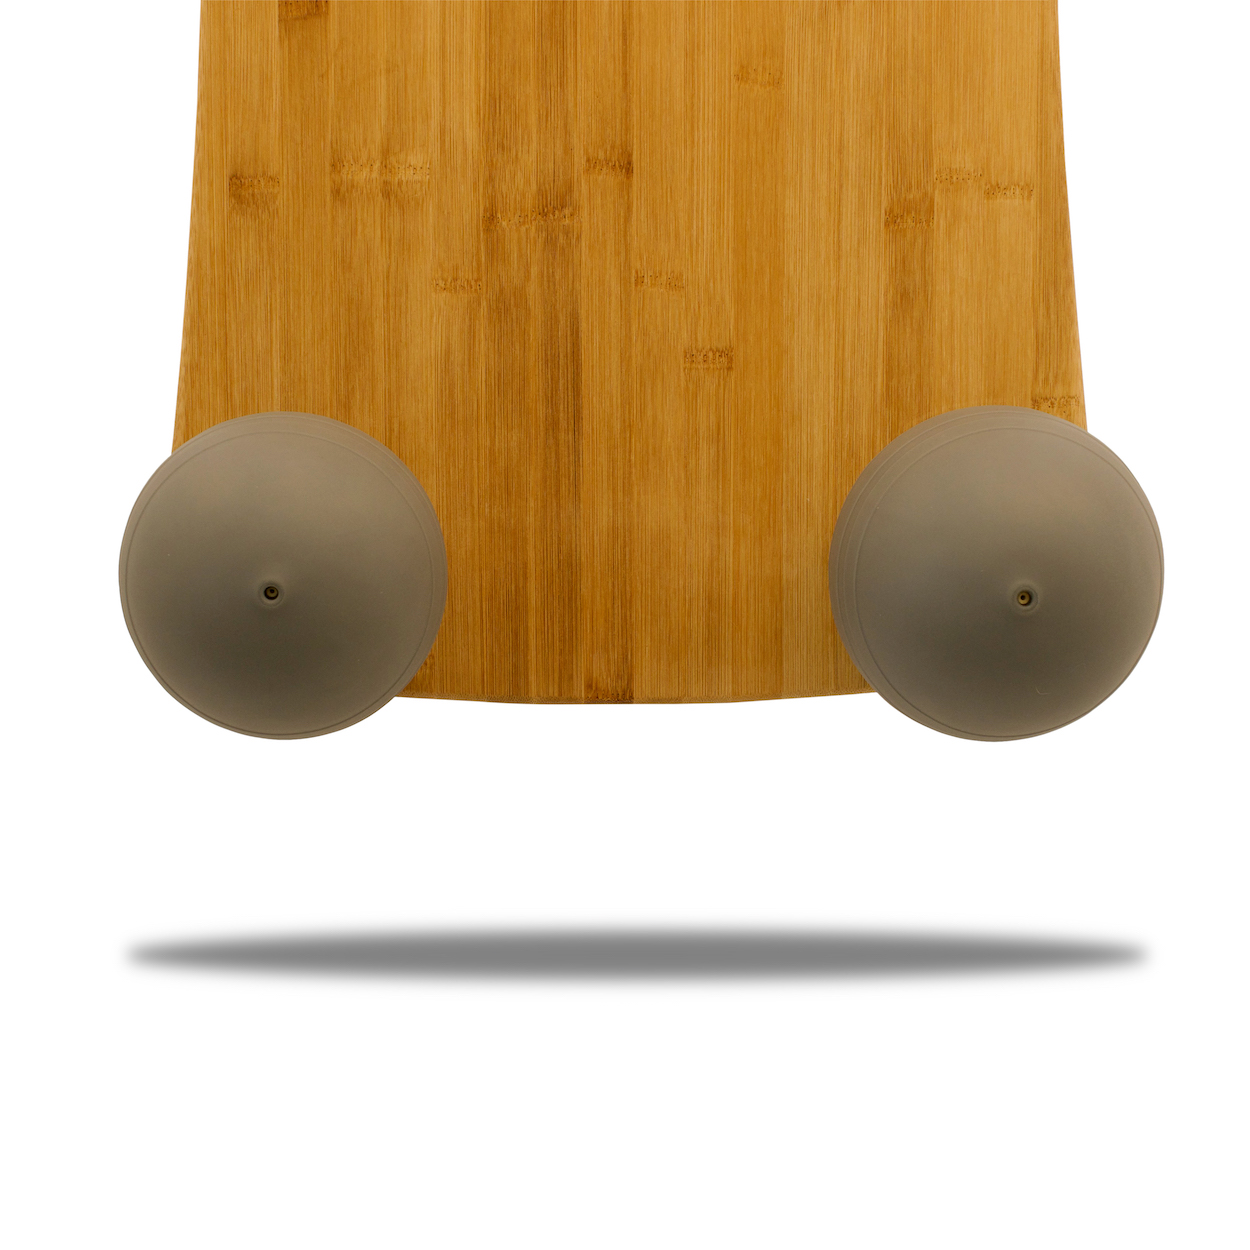 Pono Board Core Activating Level Motion Balance Board for Standing Desks and Exercise